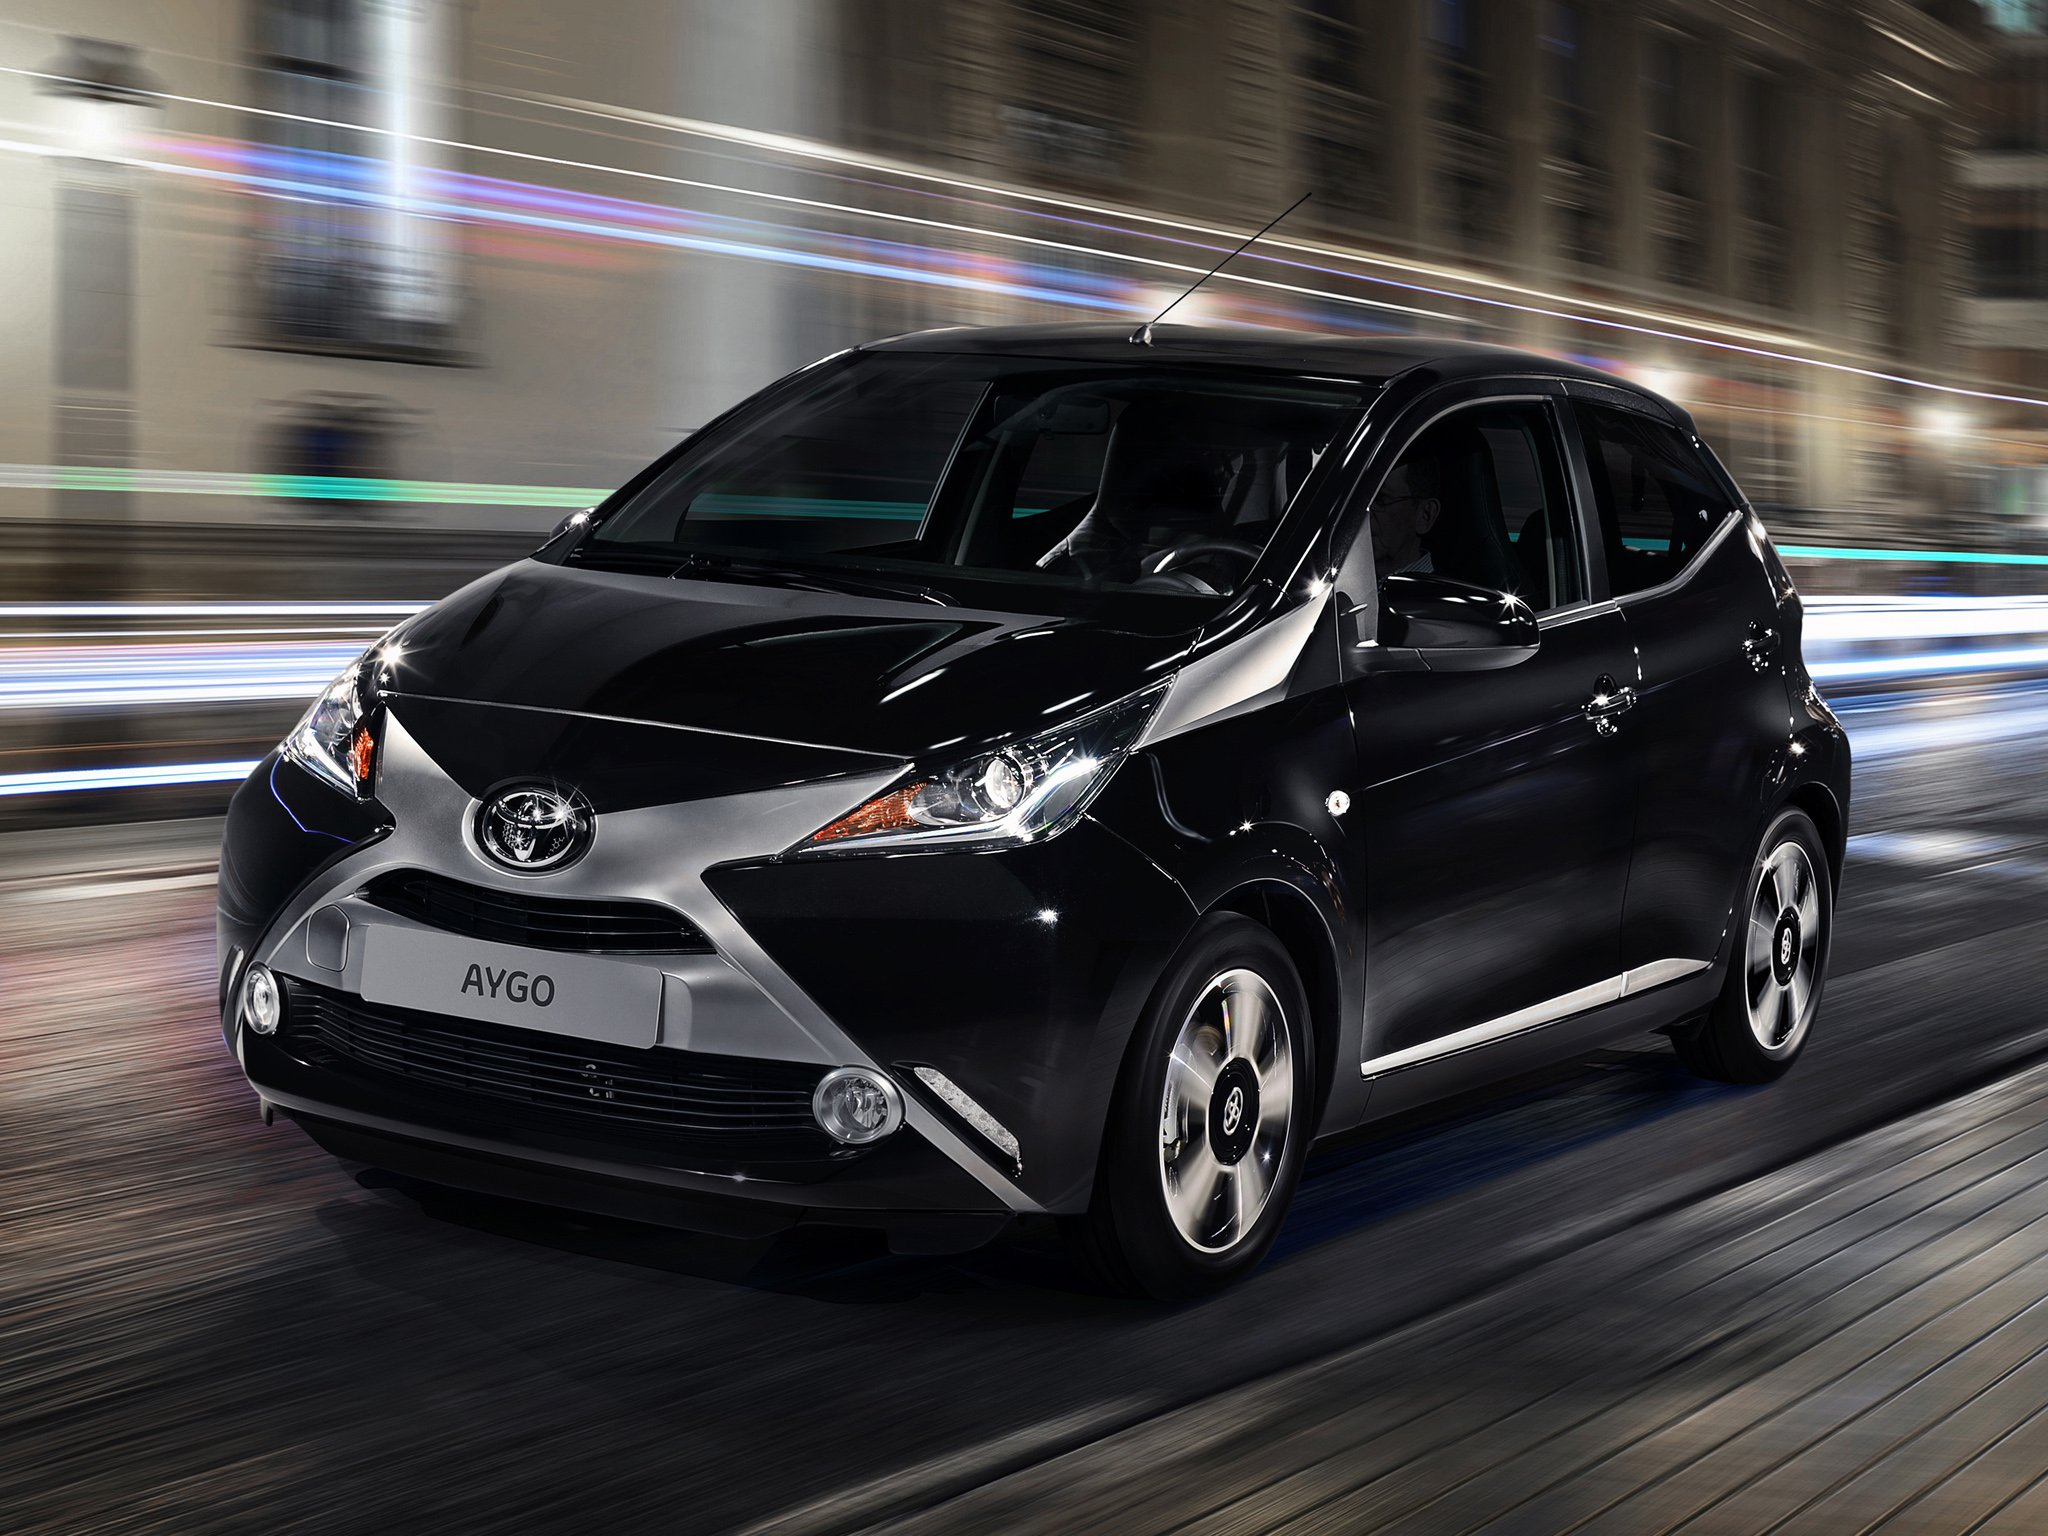 2014 toyota aygo 5 door j wallpaper 2048x1536 298598 wallpaperup. Black Bedroom Furniture Sets. Home Design Ideas